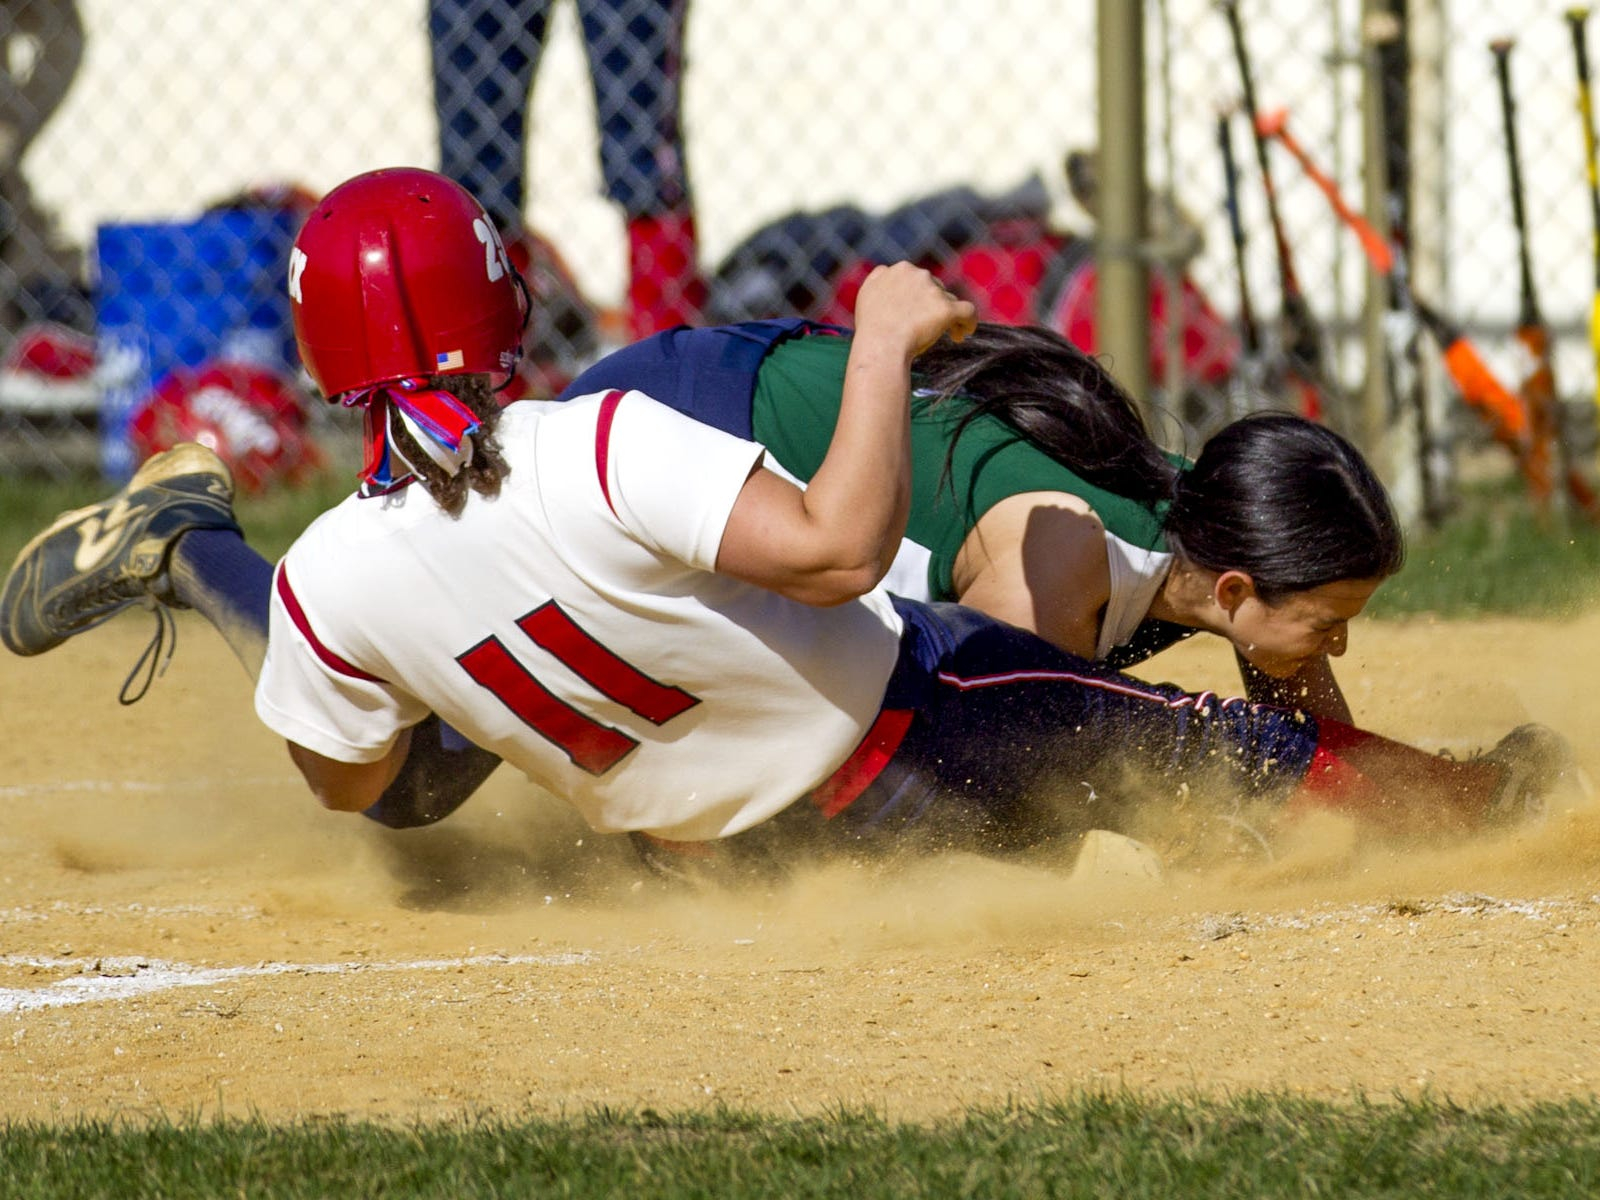 Mike McLaughlin/Correspondent Wall?s Katie Wingel slides home safely after a wild pitch by Colts Neck?s Olivia Sardoff on Thursday. Wall's Katie Wingel slides in safely at home after a wild pitch by Colts Neck's Olivia Sardoff at Colts Neck High School. Thursday, April 16, 2015, Colts Neck, NJ. Mike McLaughlin/Asbury Park Press ASB 0417 softball roundup